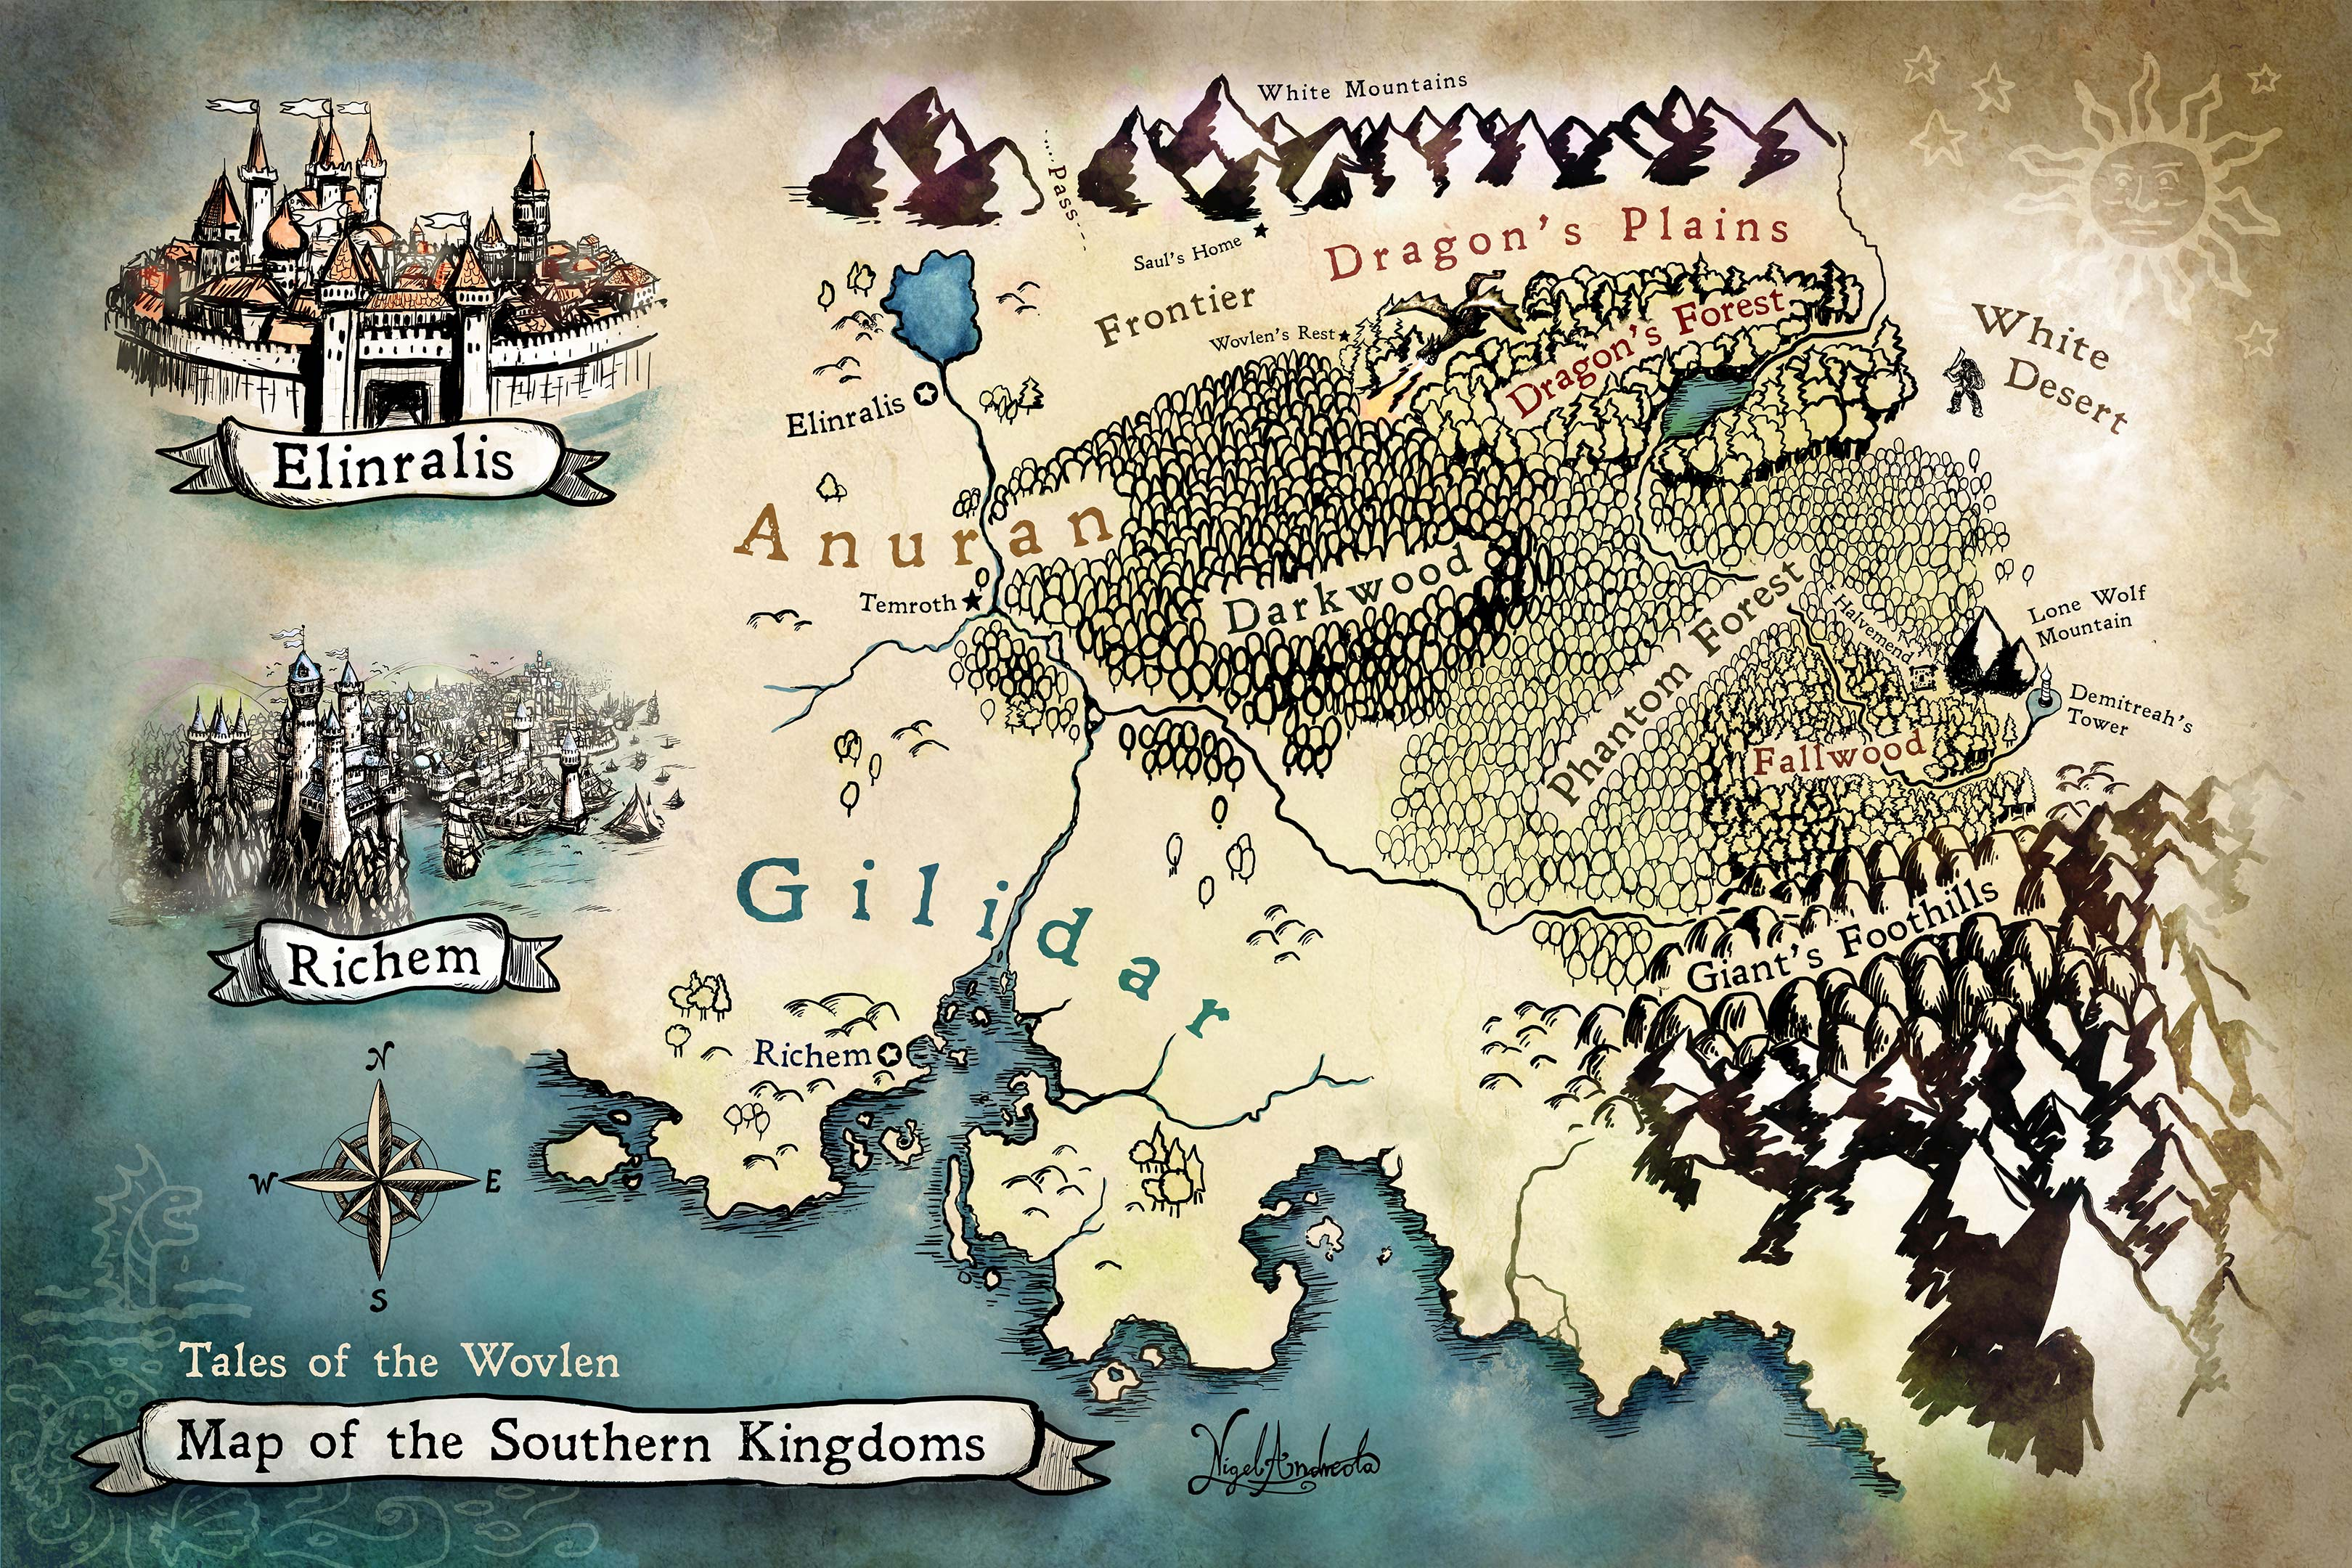 Tales of the Wovlen - Map of the Southern Kingdoms - Kathryn Fogleman - Drawn By Nigel Andreola